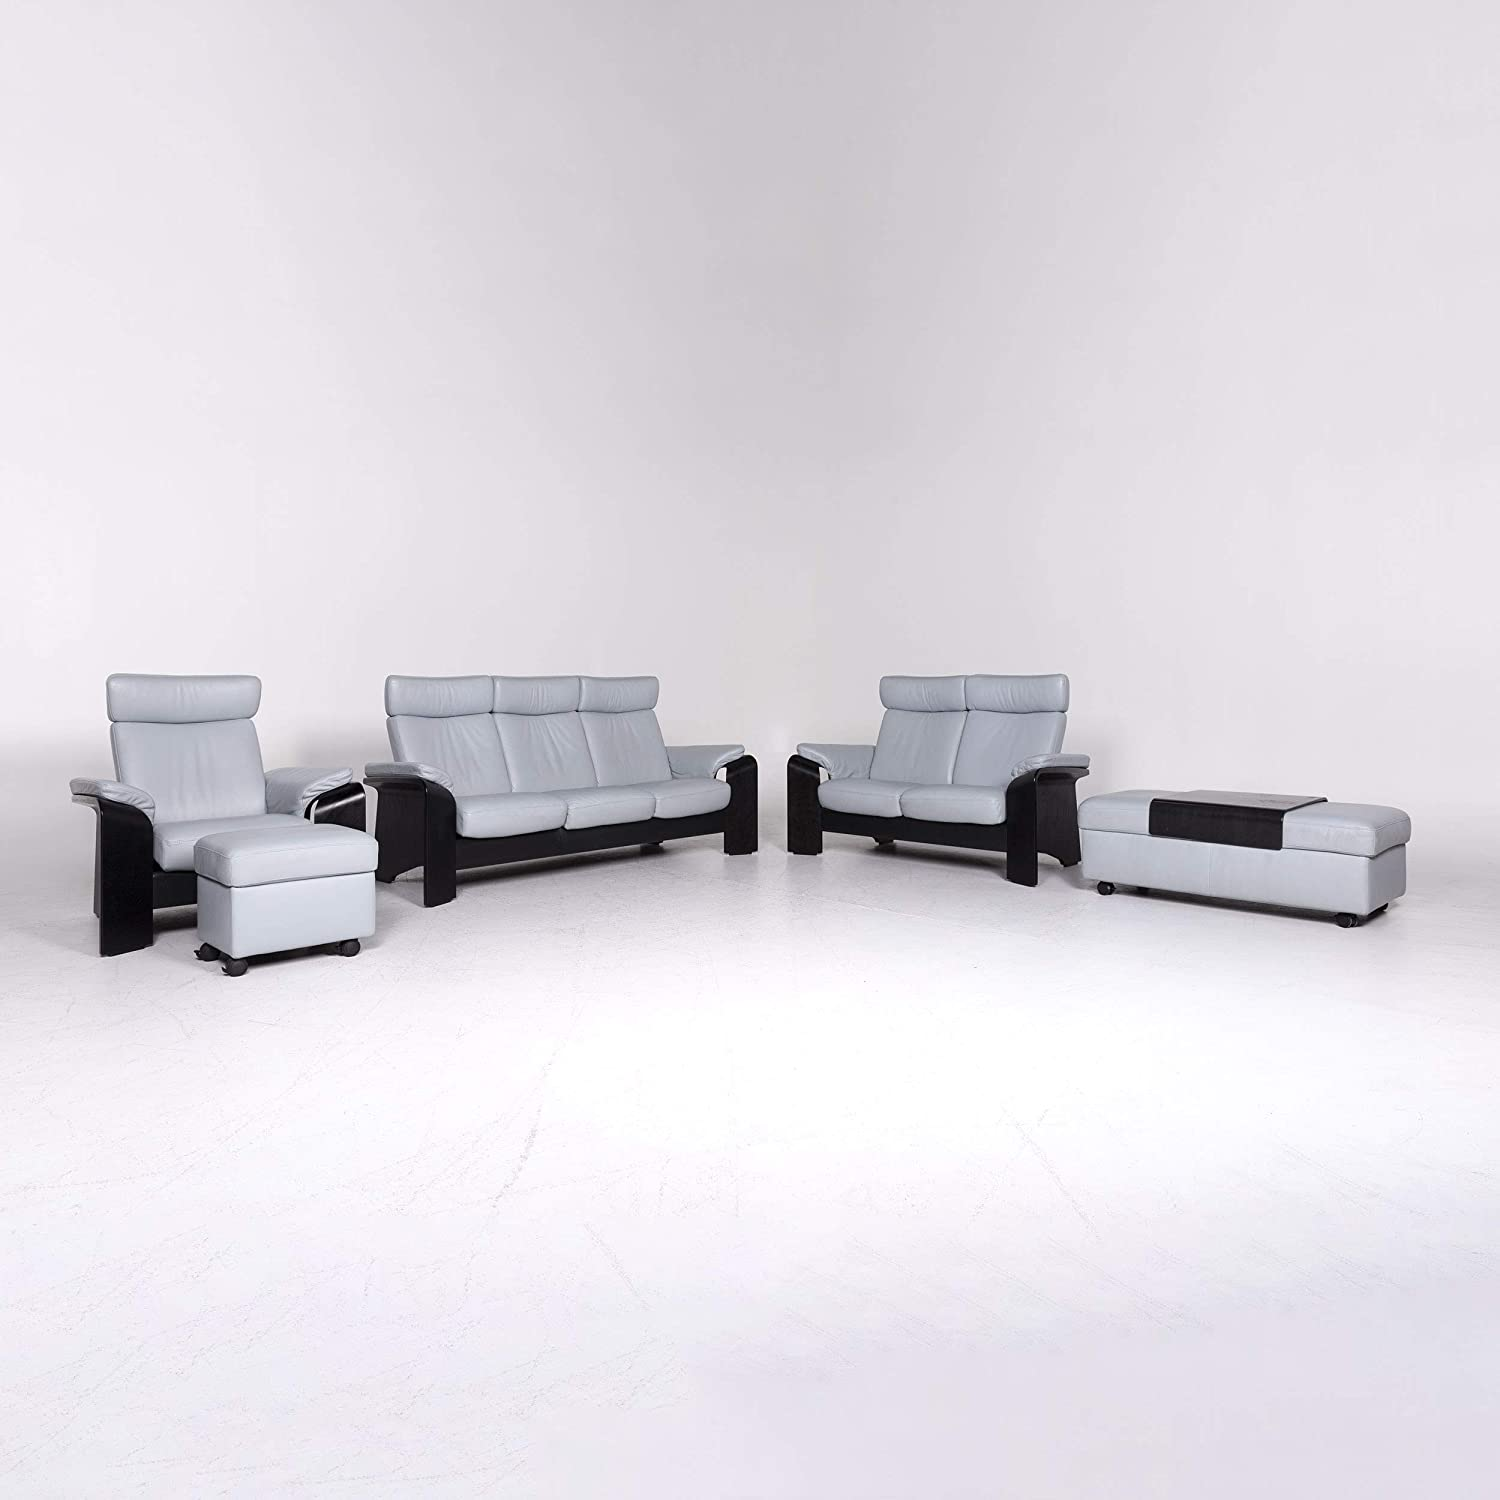 Stressless Pegasus Leather Sofa Set Blue Corner Sofa Three ...